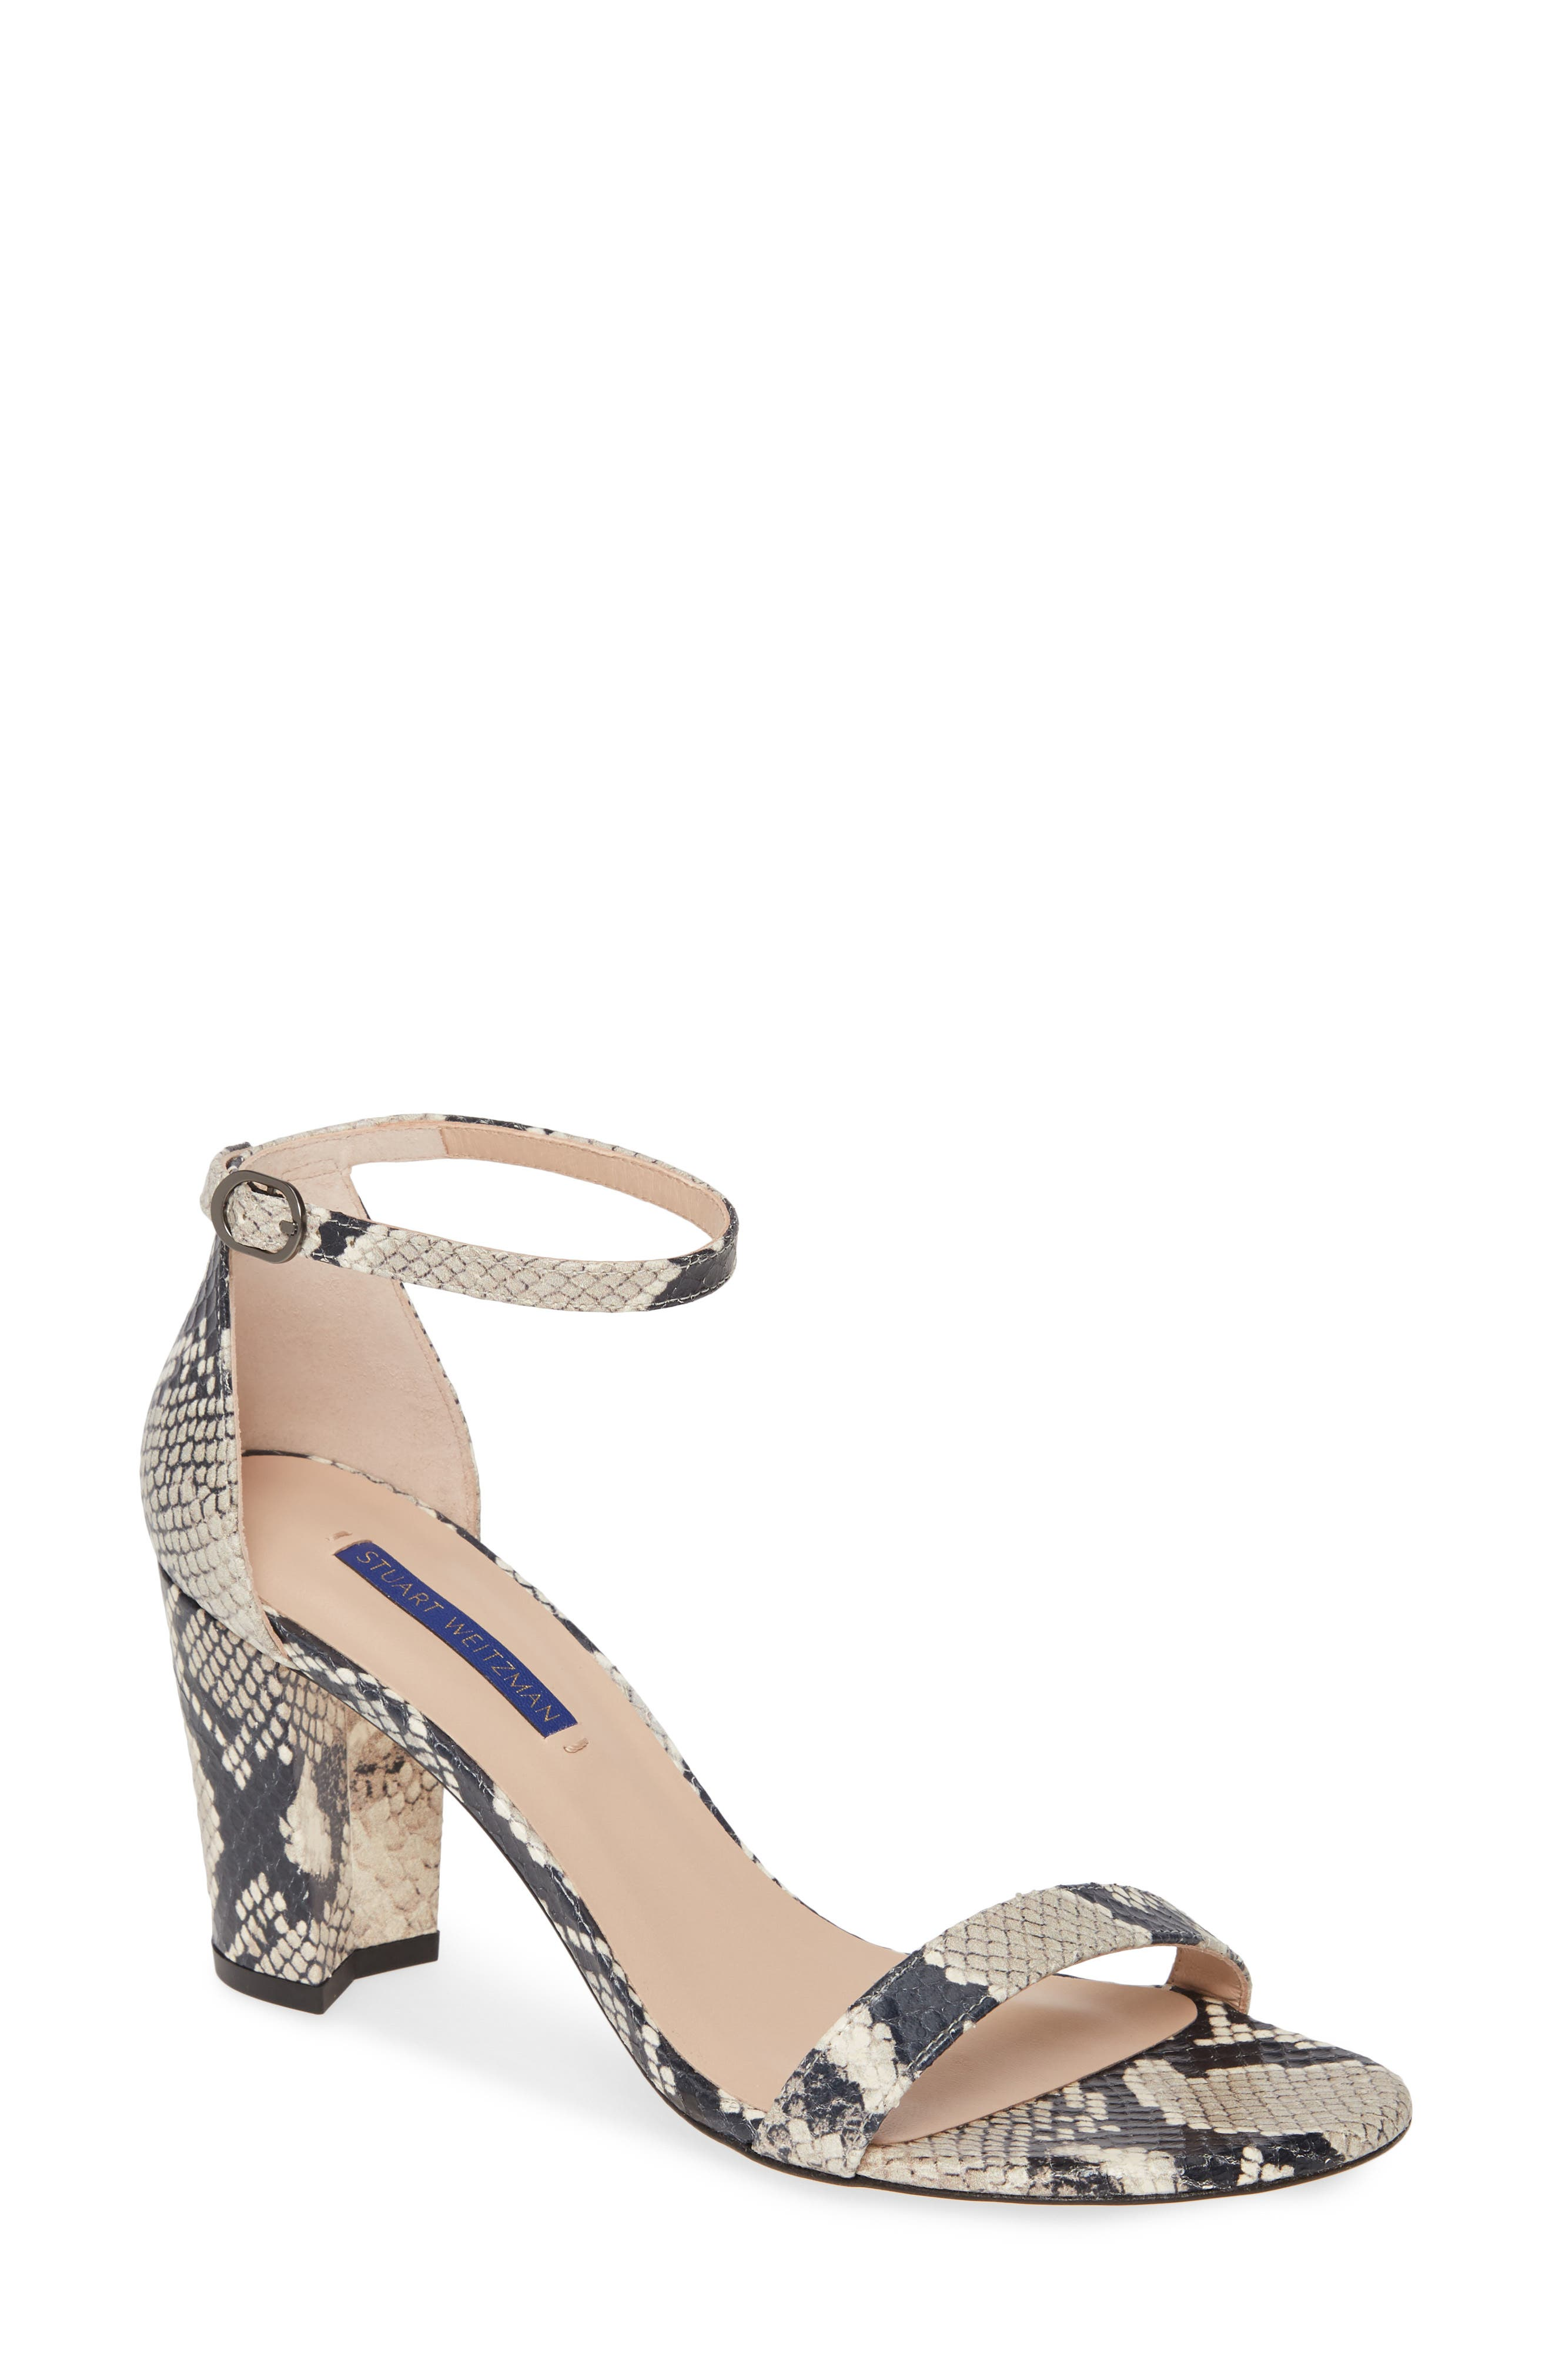 a5cfd1e6f Stuart Weitzman Nearlynude Ankle Strap Sandal, Brown